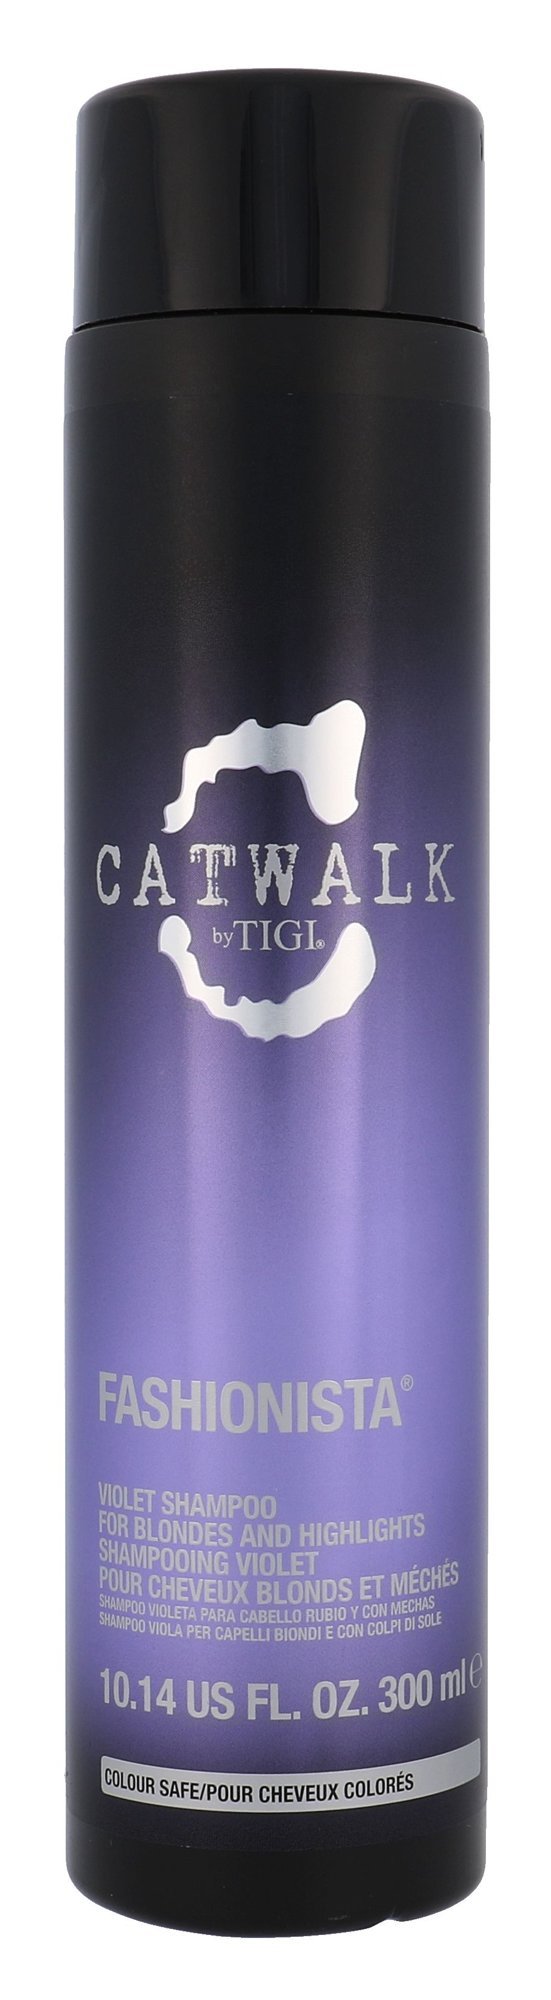 Tigi Catwalk Fashionista Cosmetic 300ml